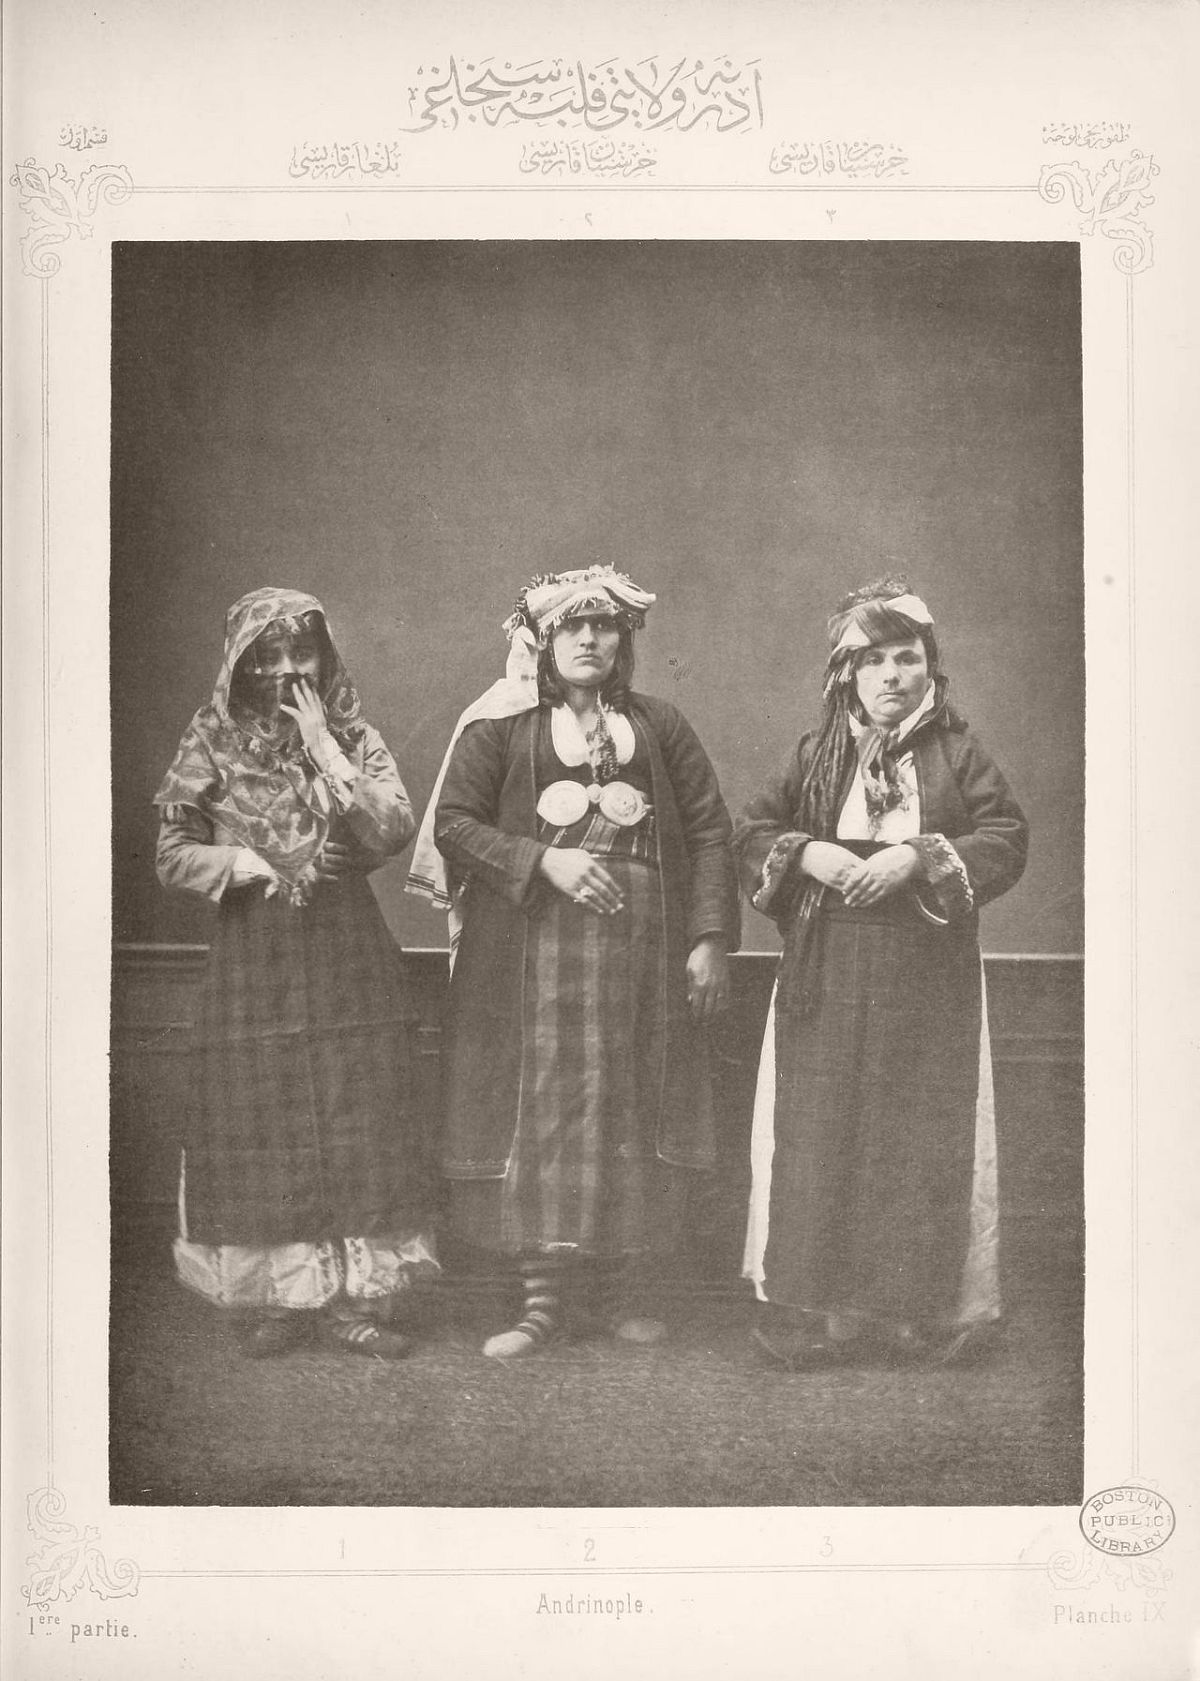 1. Bulgarian woman from Ahi Tchelebi 2. Greek woman from Haskovo 3. Peasant woman from Baidjas